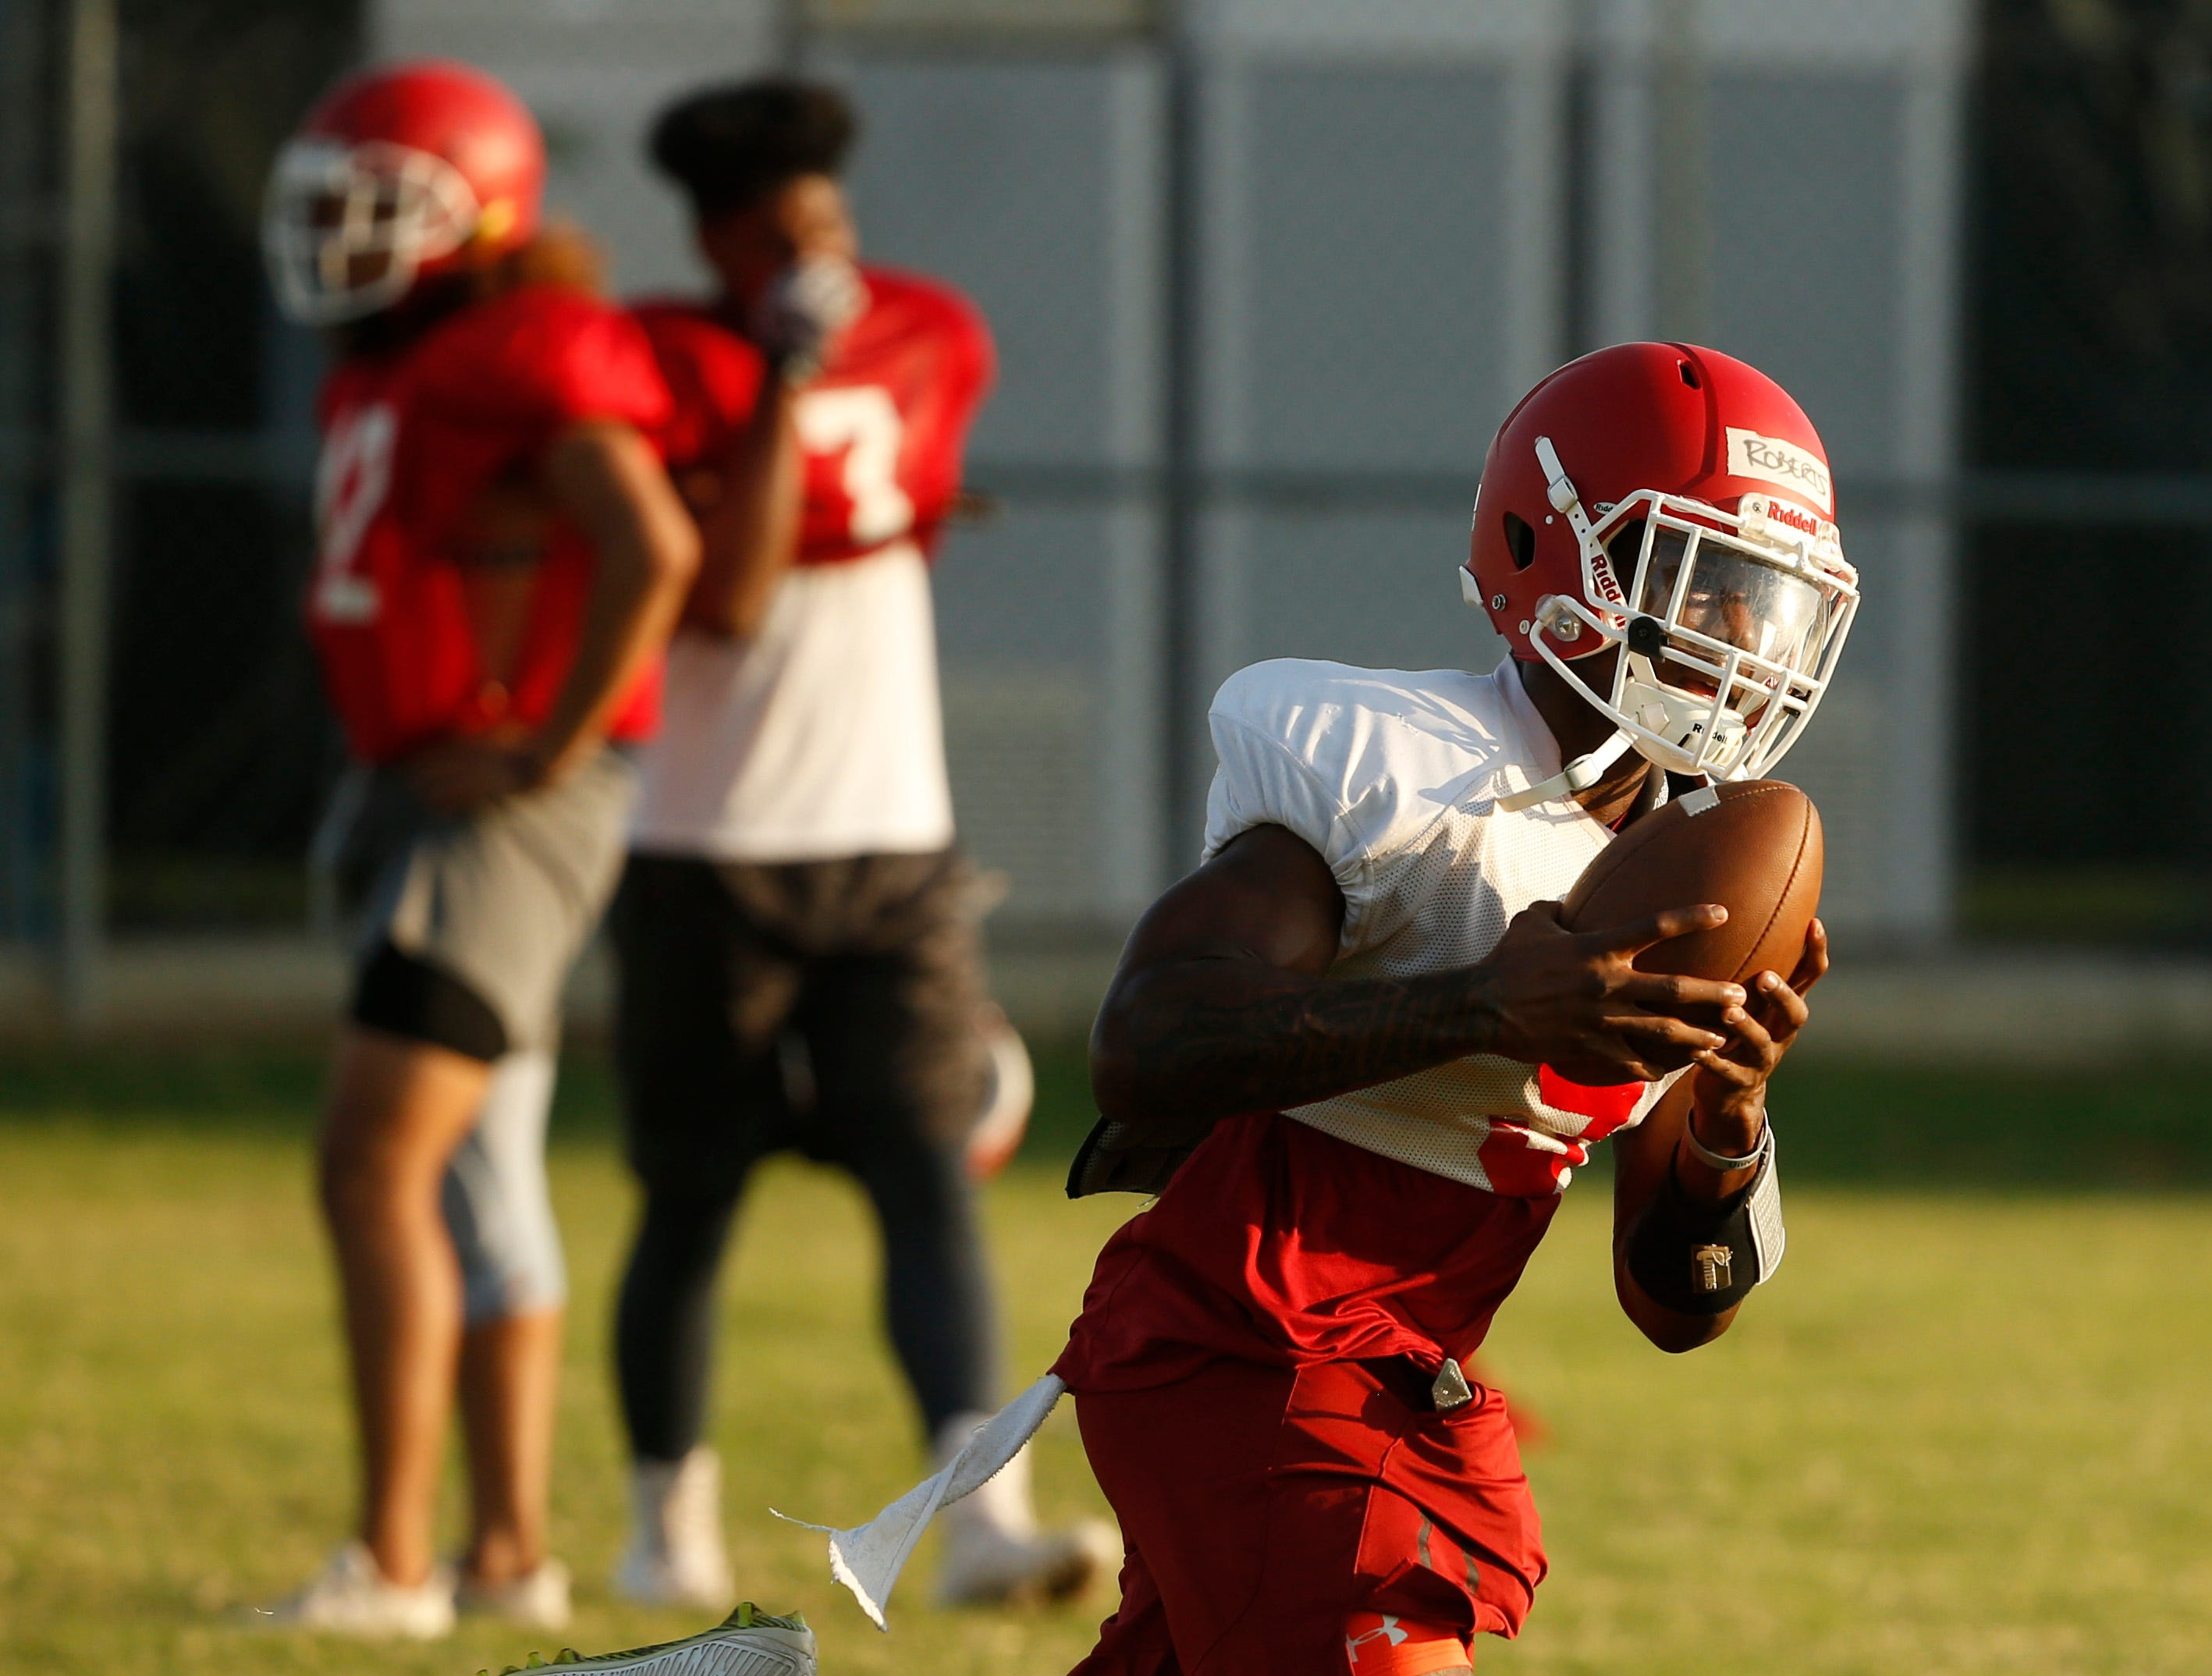 Player Braylon Roberts (9) catches a pass during practice at Mesa Community College in Mesa, Ariz. on Aug. 16, 2018.